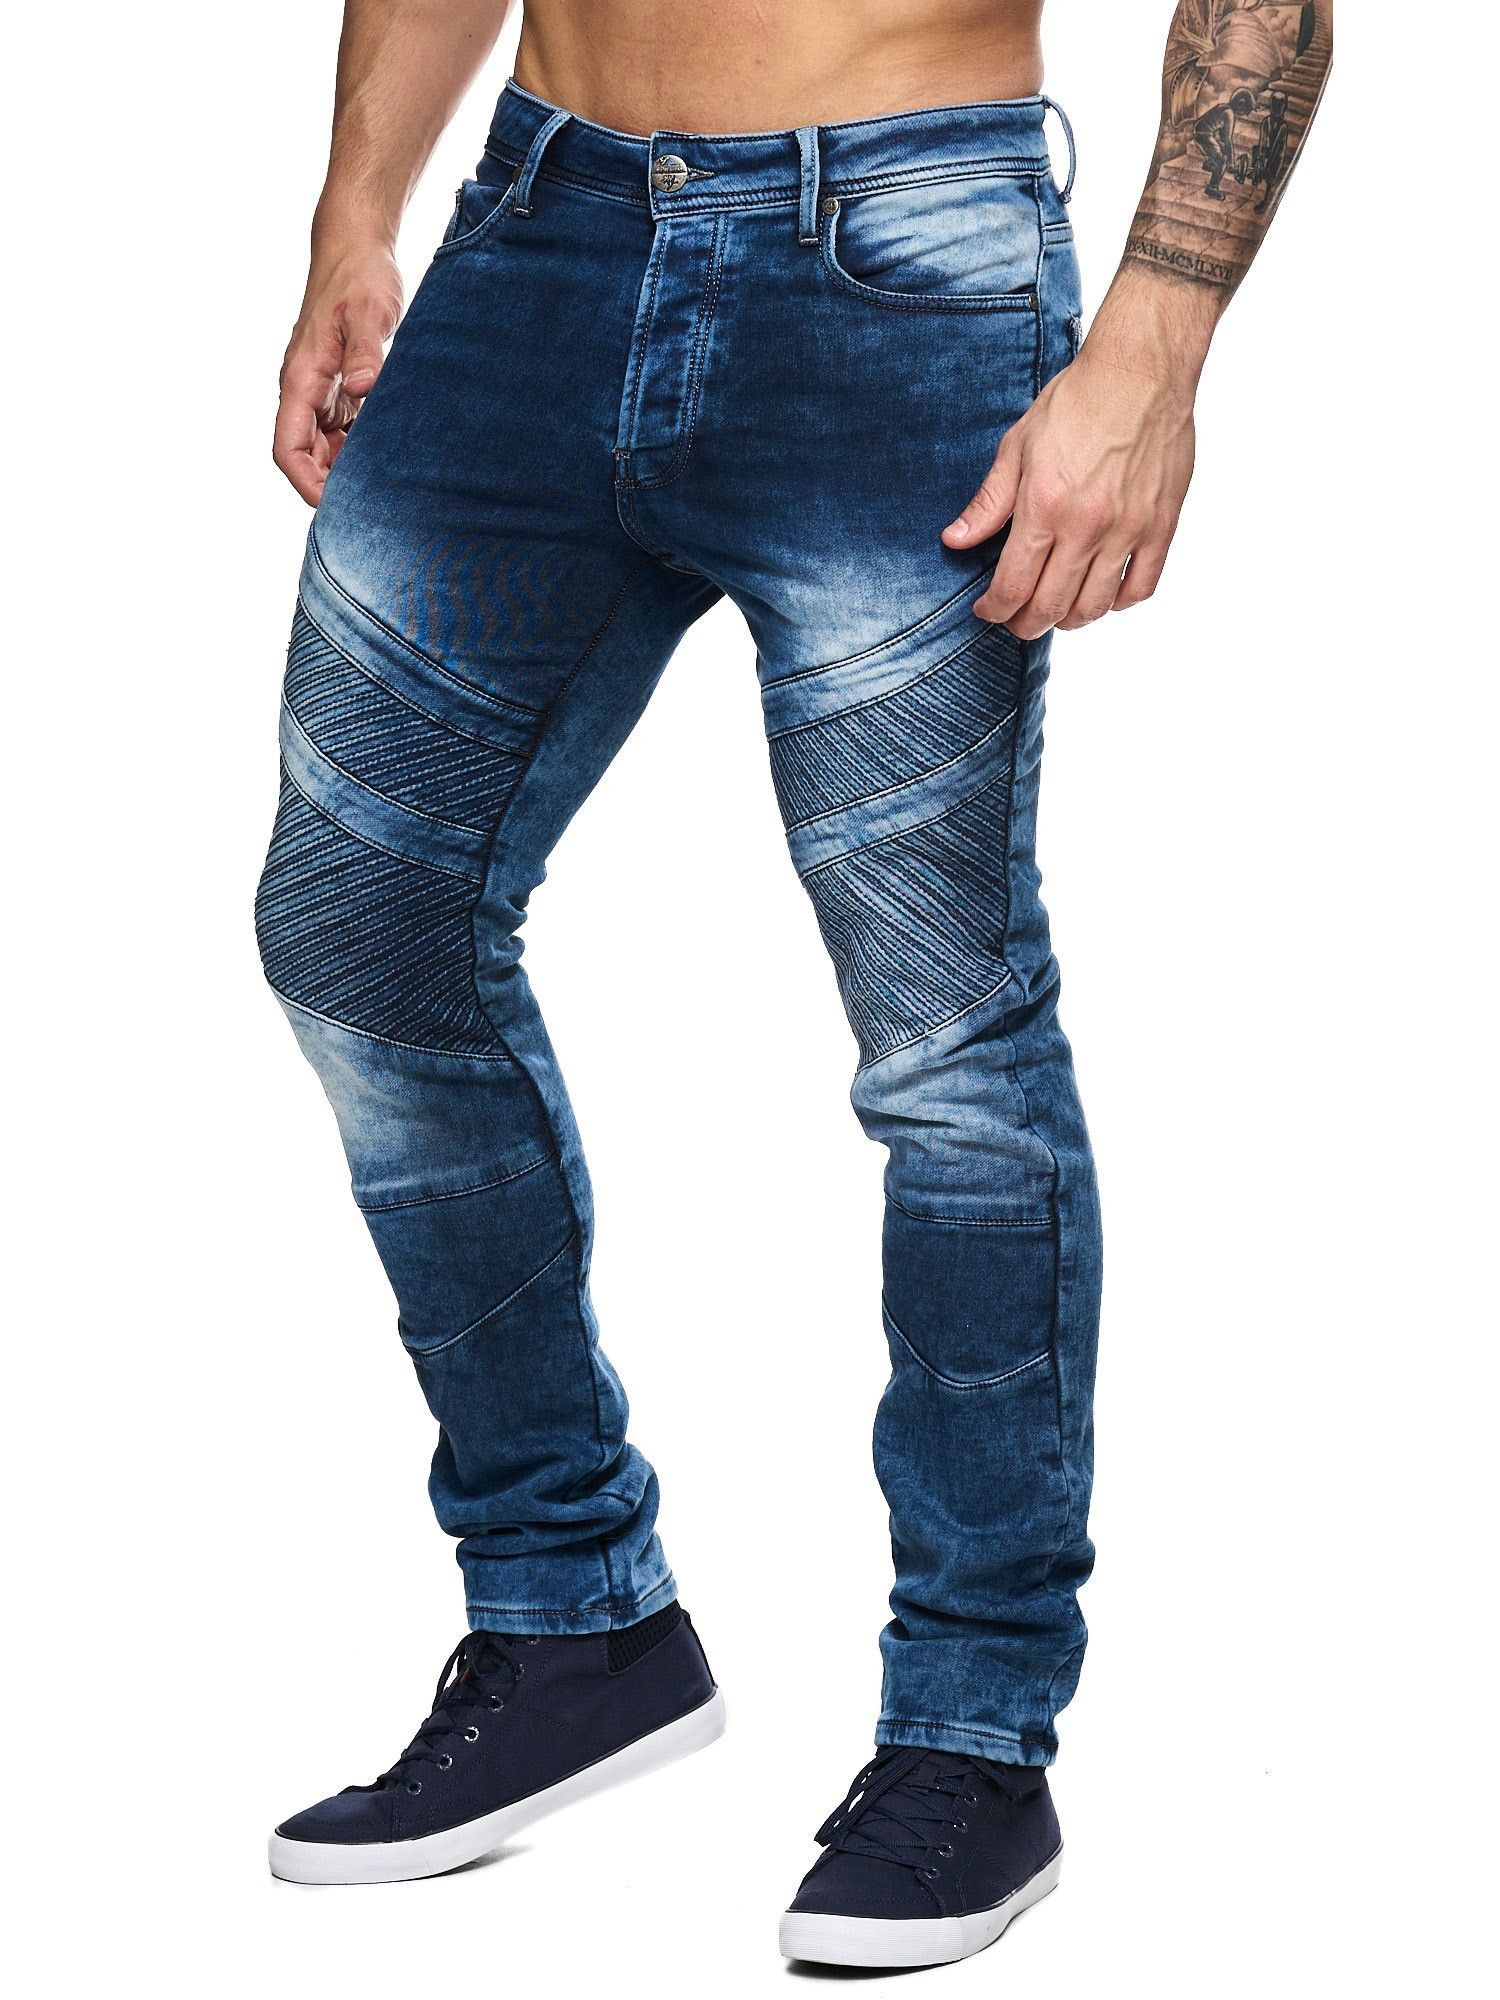 F S Men Slim Fit Denim Power Biker Jeans - Washed Blue   me   Jeans ... 675b21e4f0